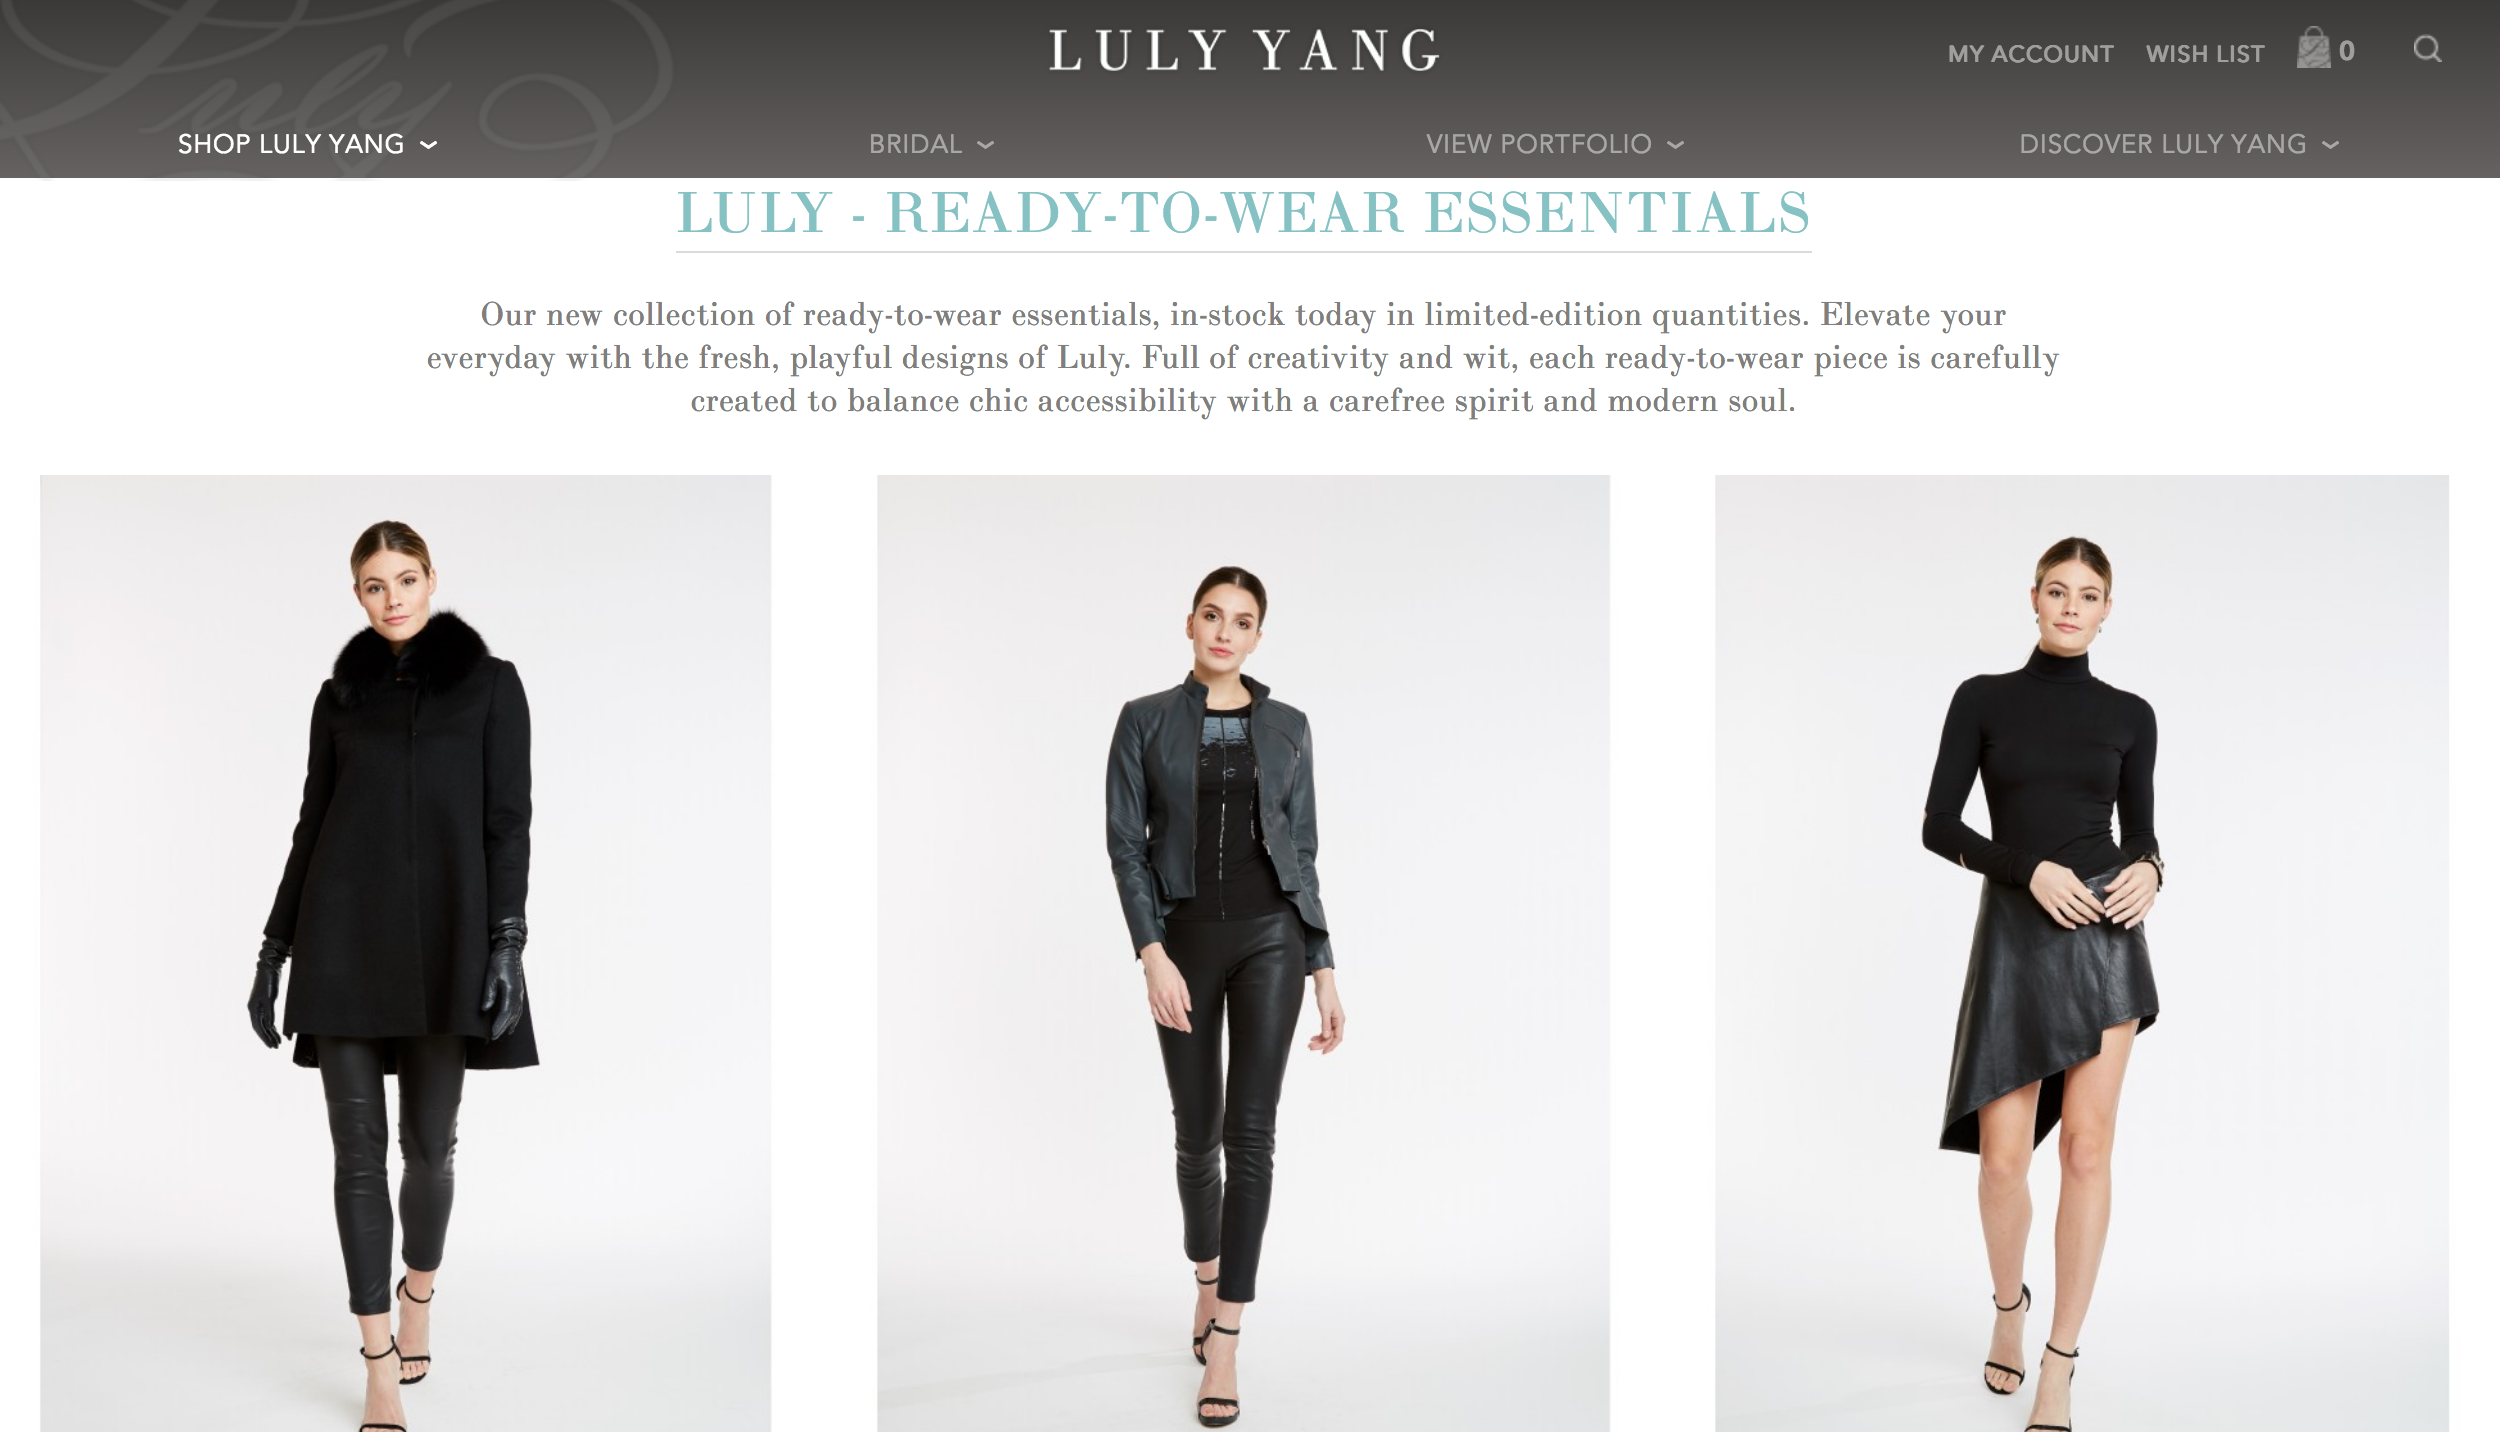 Luly - Ready-to-Wear Essentials